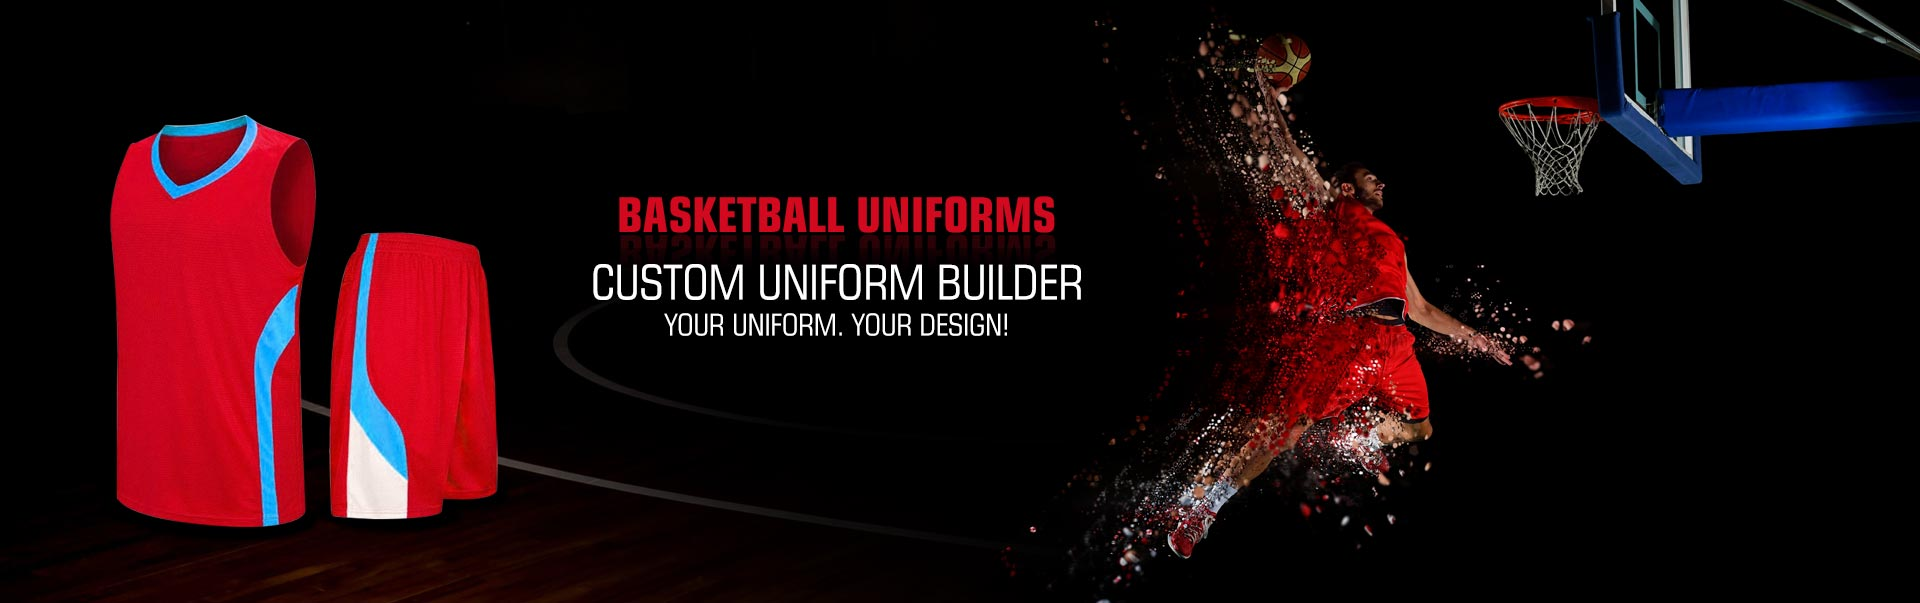 Basketball Uniforms Wholesaler, Suppliers in Sacramento